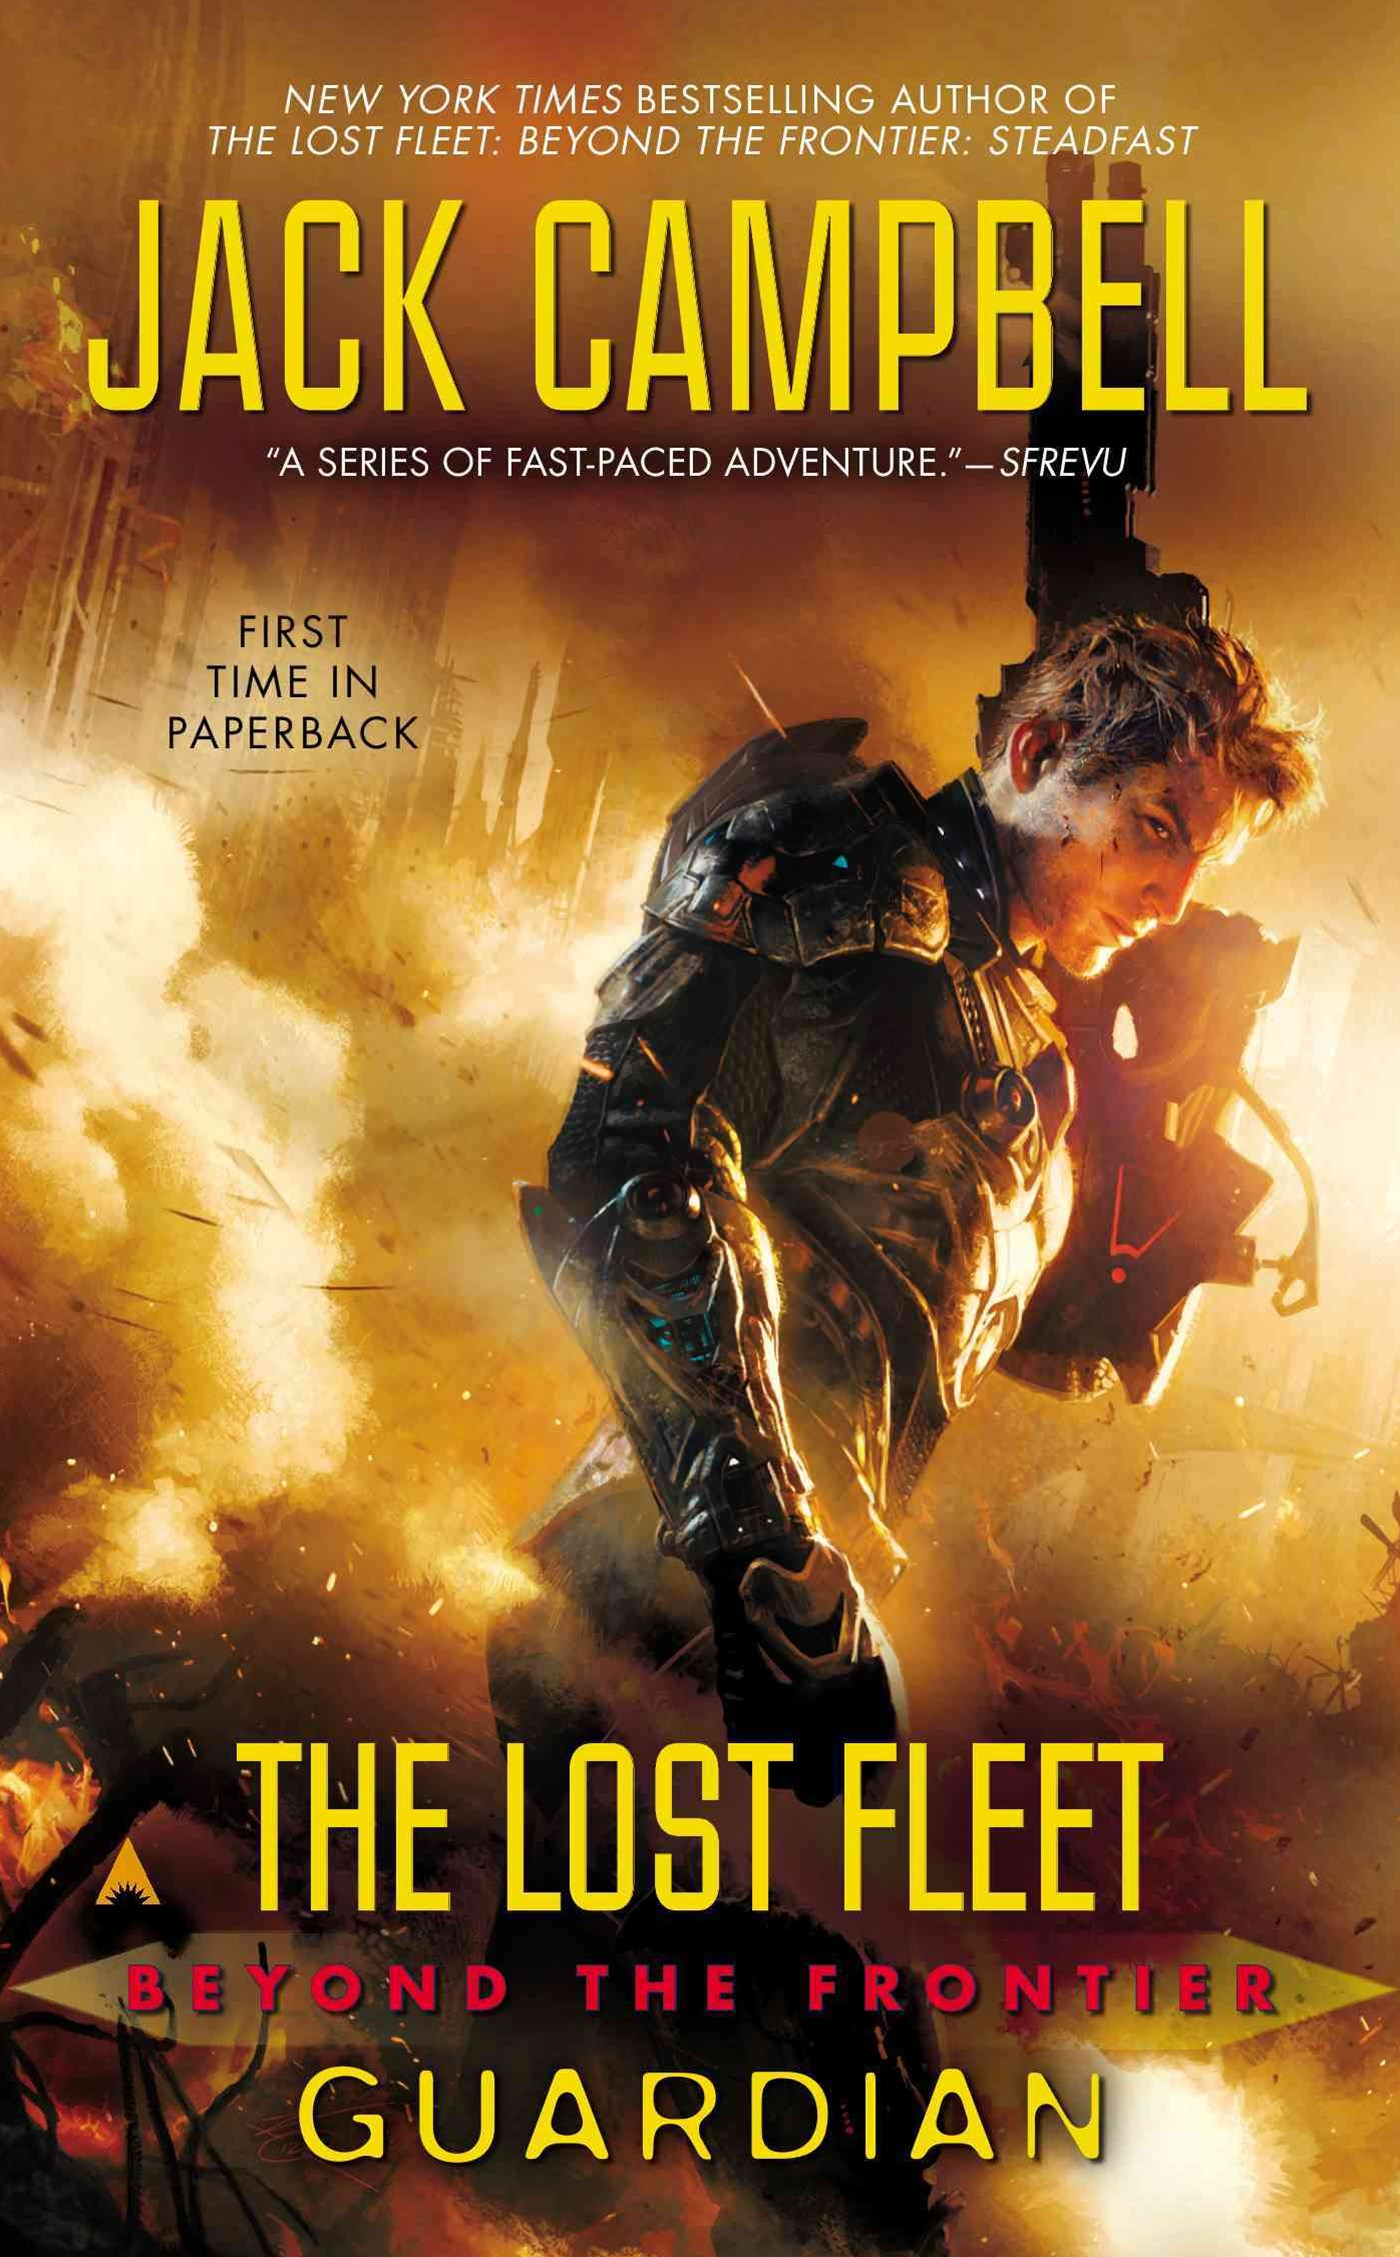 The Lost Fleet: Beyond the Frontier: Guardian